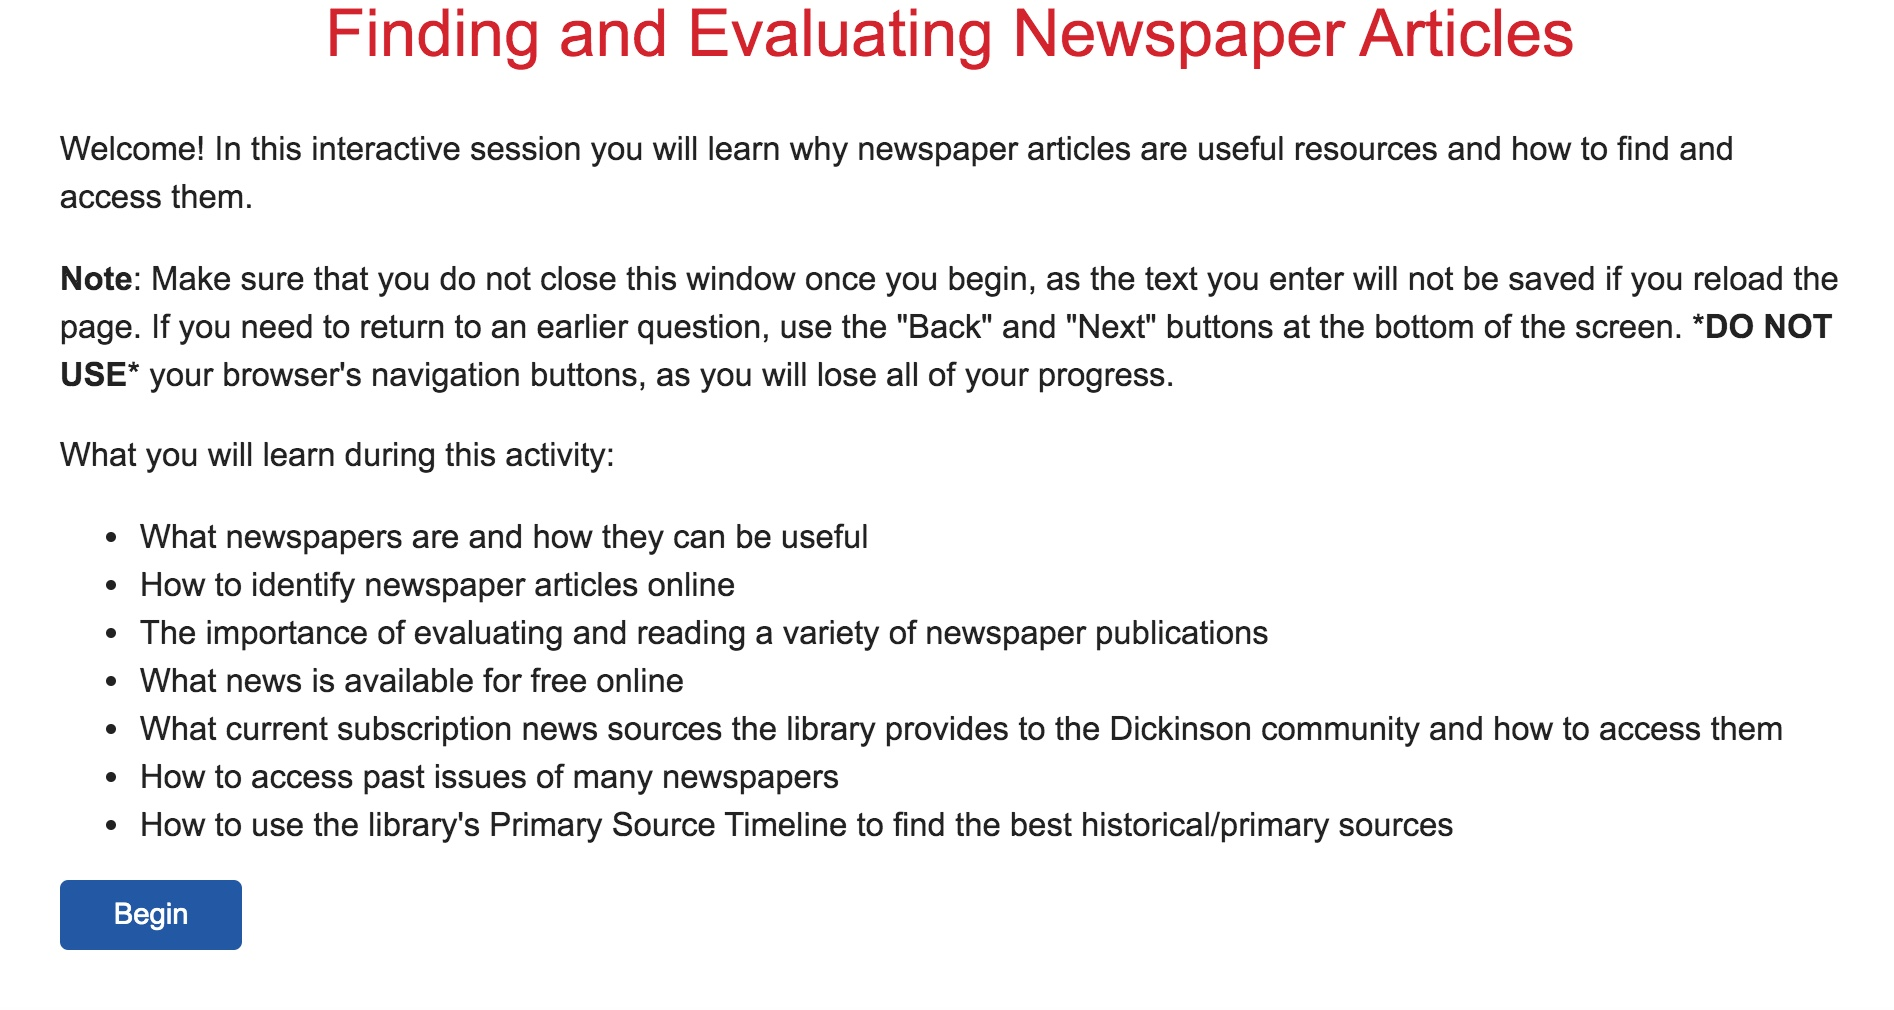 Finding and Evaluating Newspaper Articles